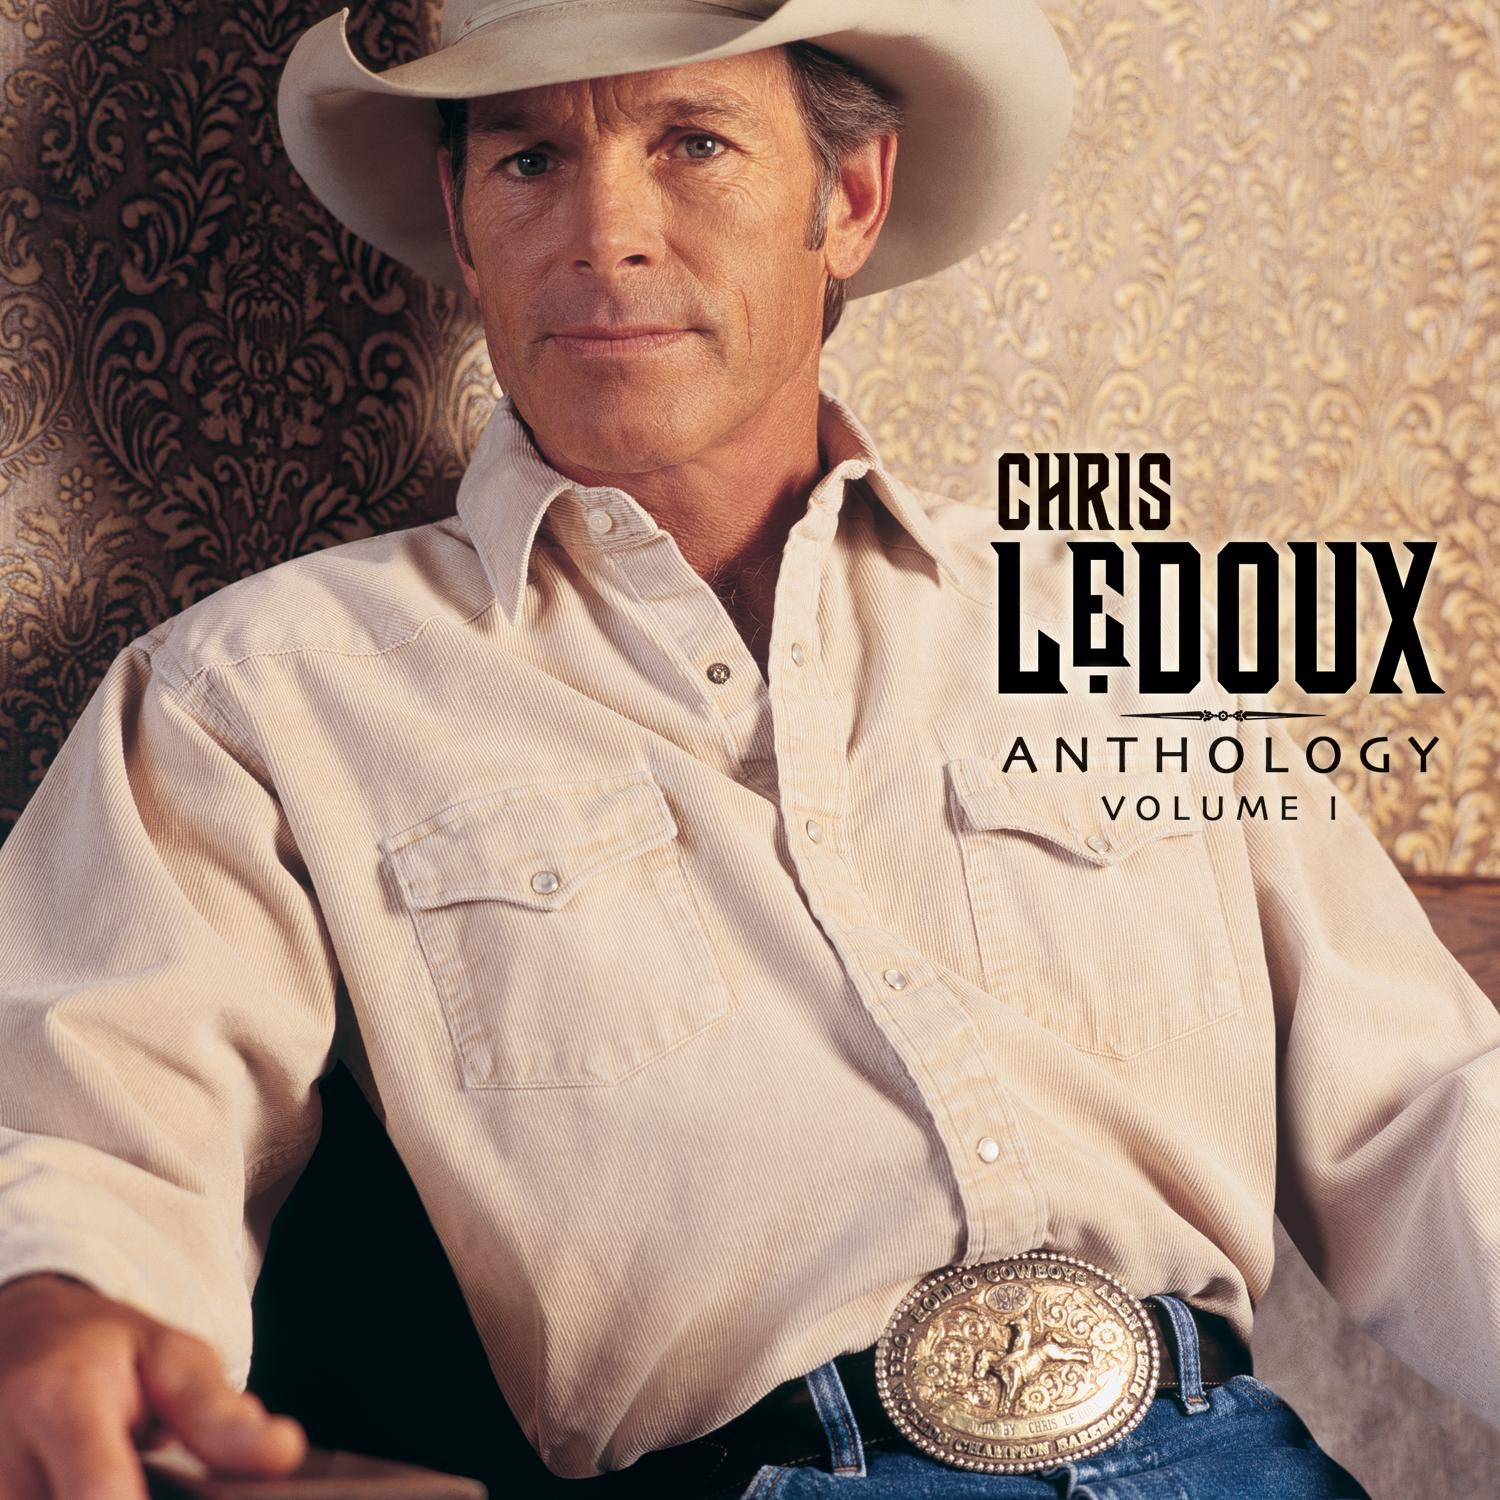 how tall is chris ledoux